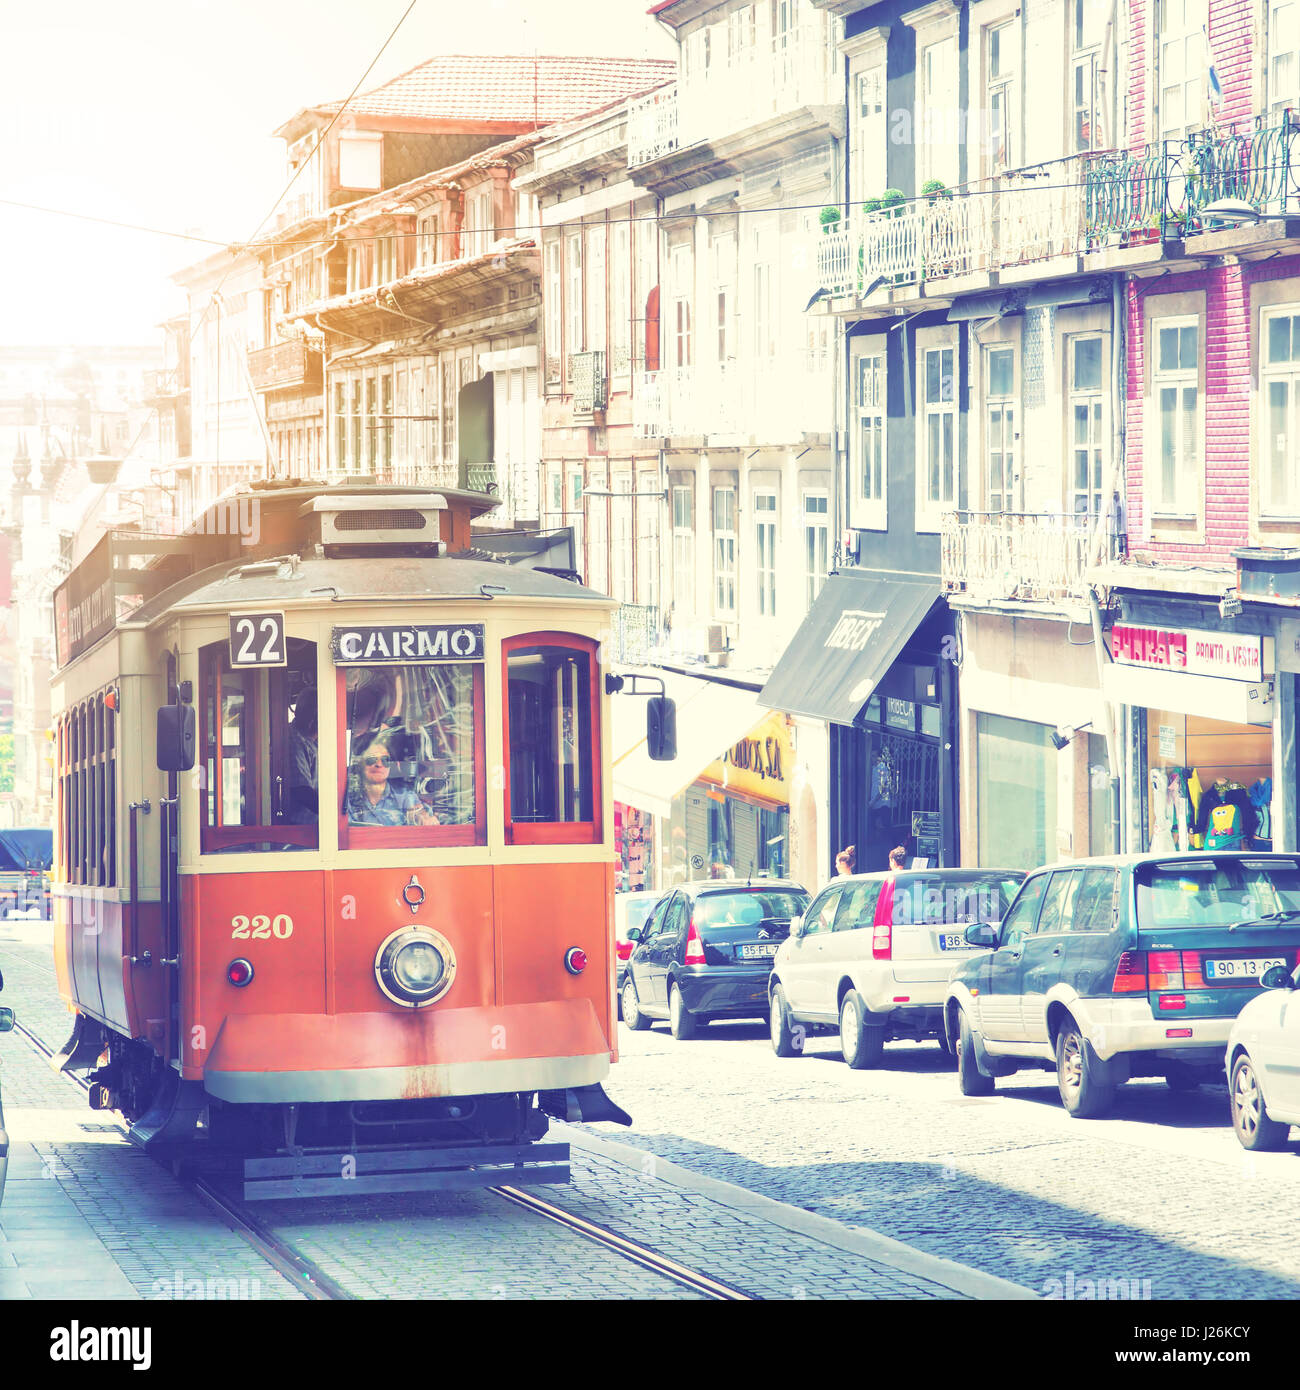 Porto, Portugal - May 12, 2012:  Old tram in downtown of Porto Stock Photo